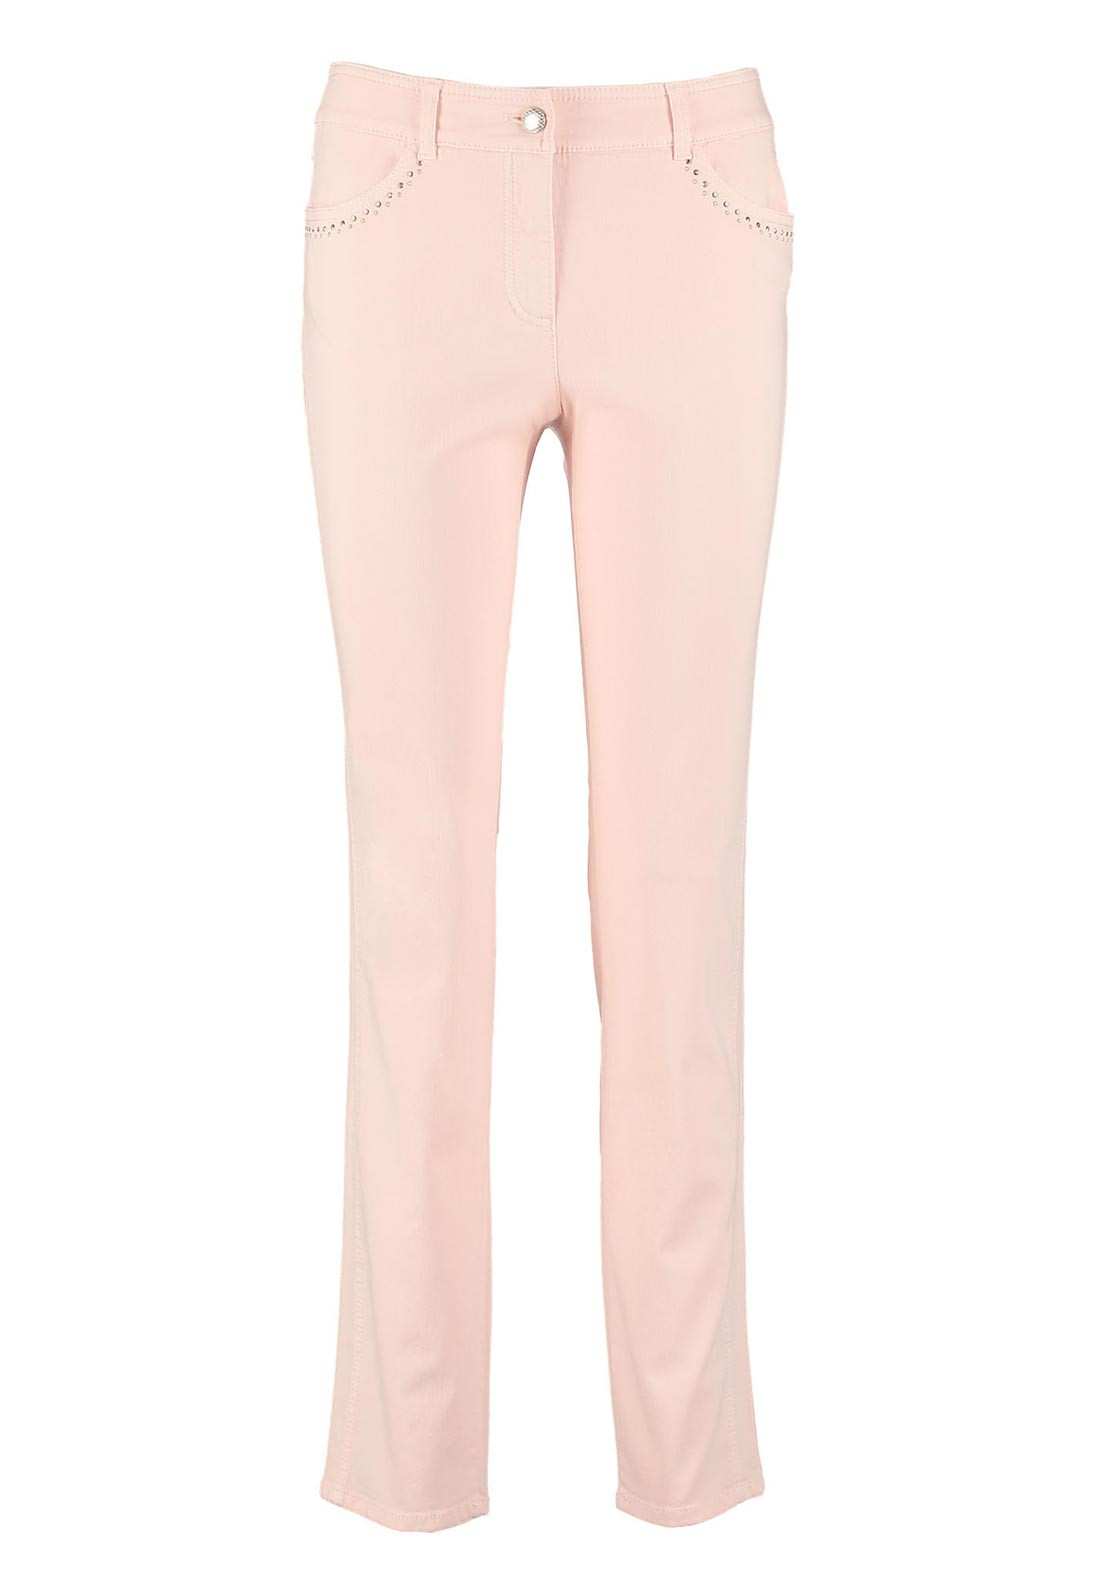 Gerry Weber Gemstone Embellished Straight Leg Jeans, Pale Pink